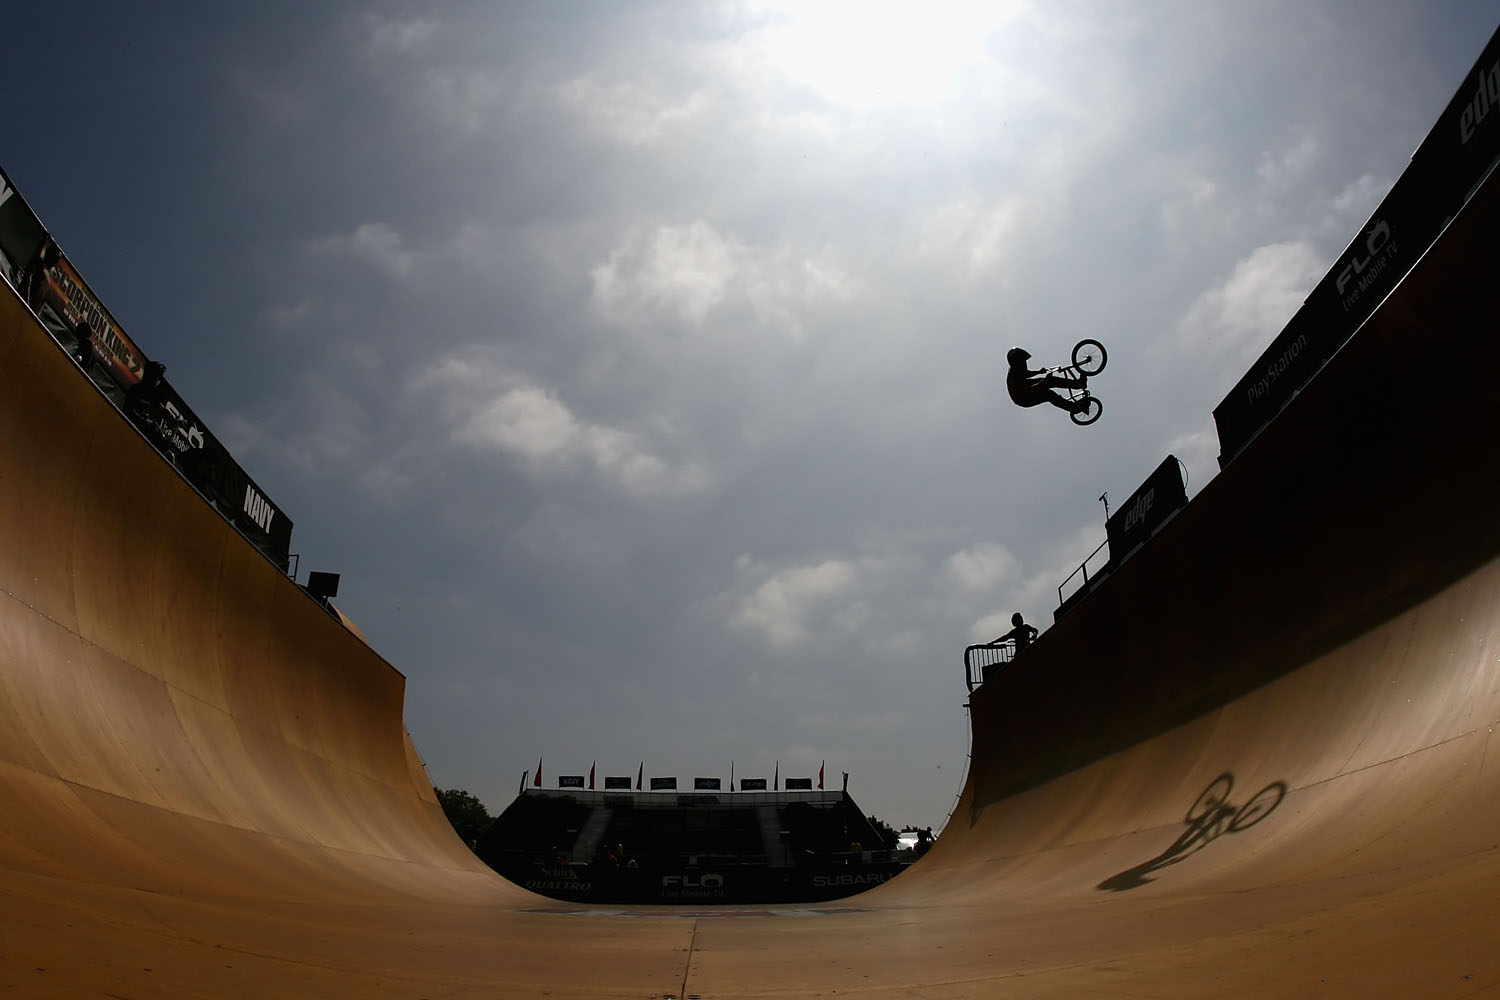 Simon Tabron practices in the BMX Freestyle Vert during X Games 14 at Home Depot Center on August 1, 2008 in Carson, California.